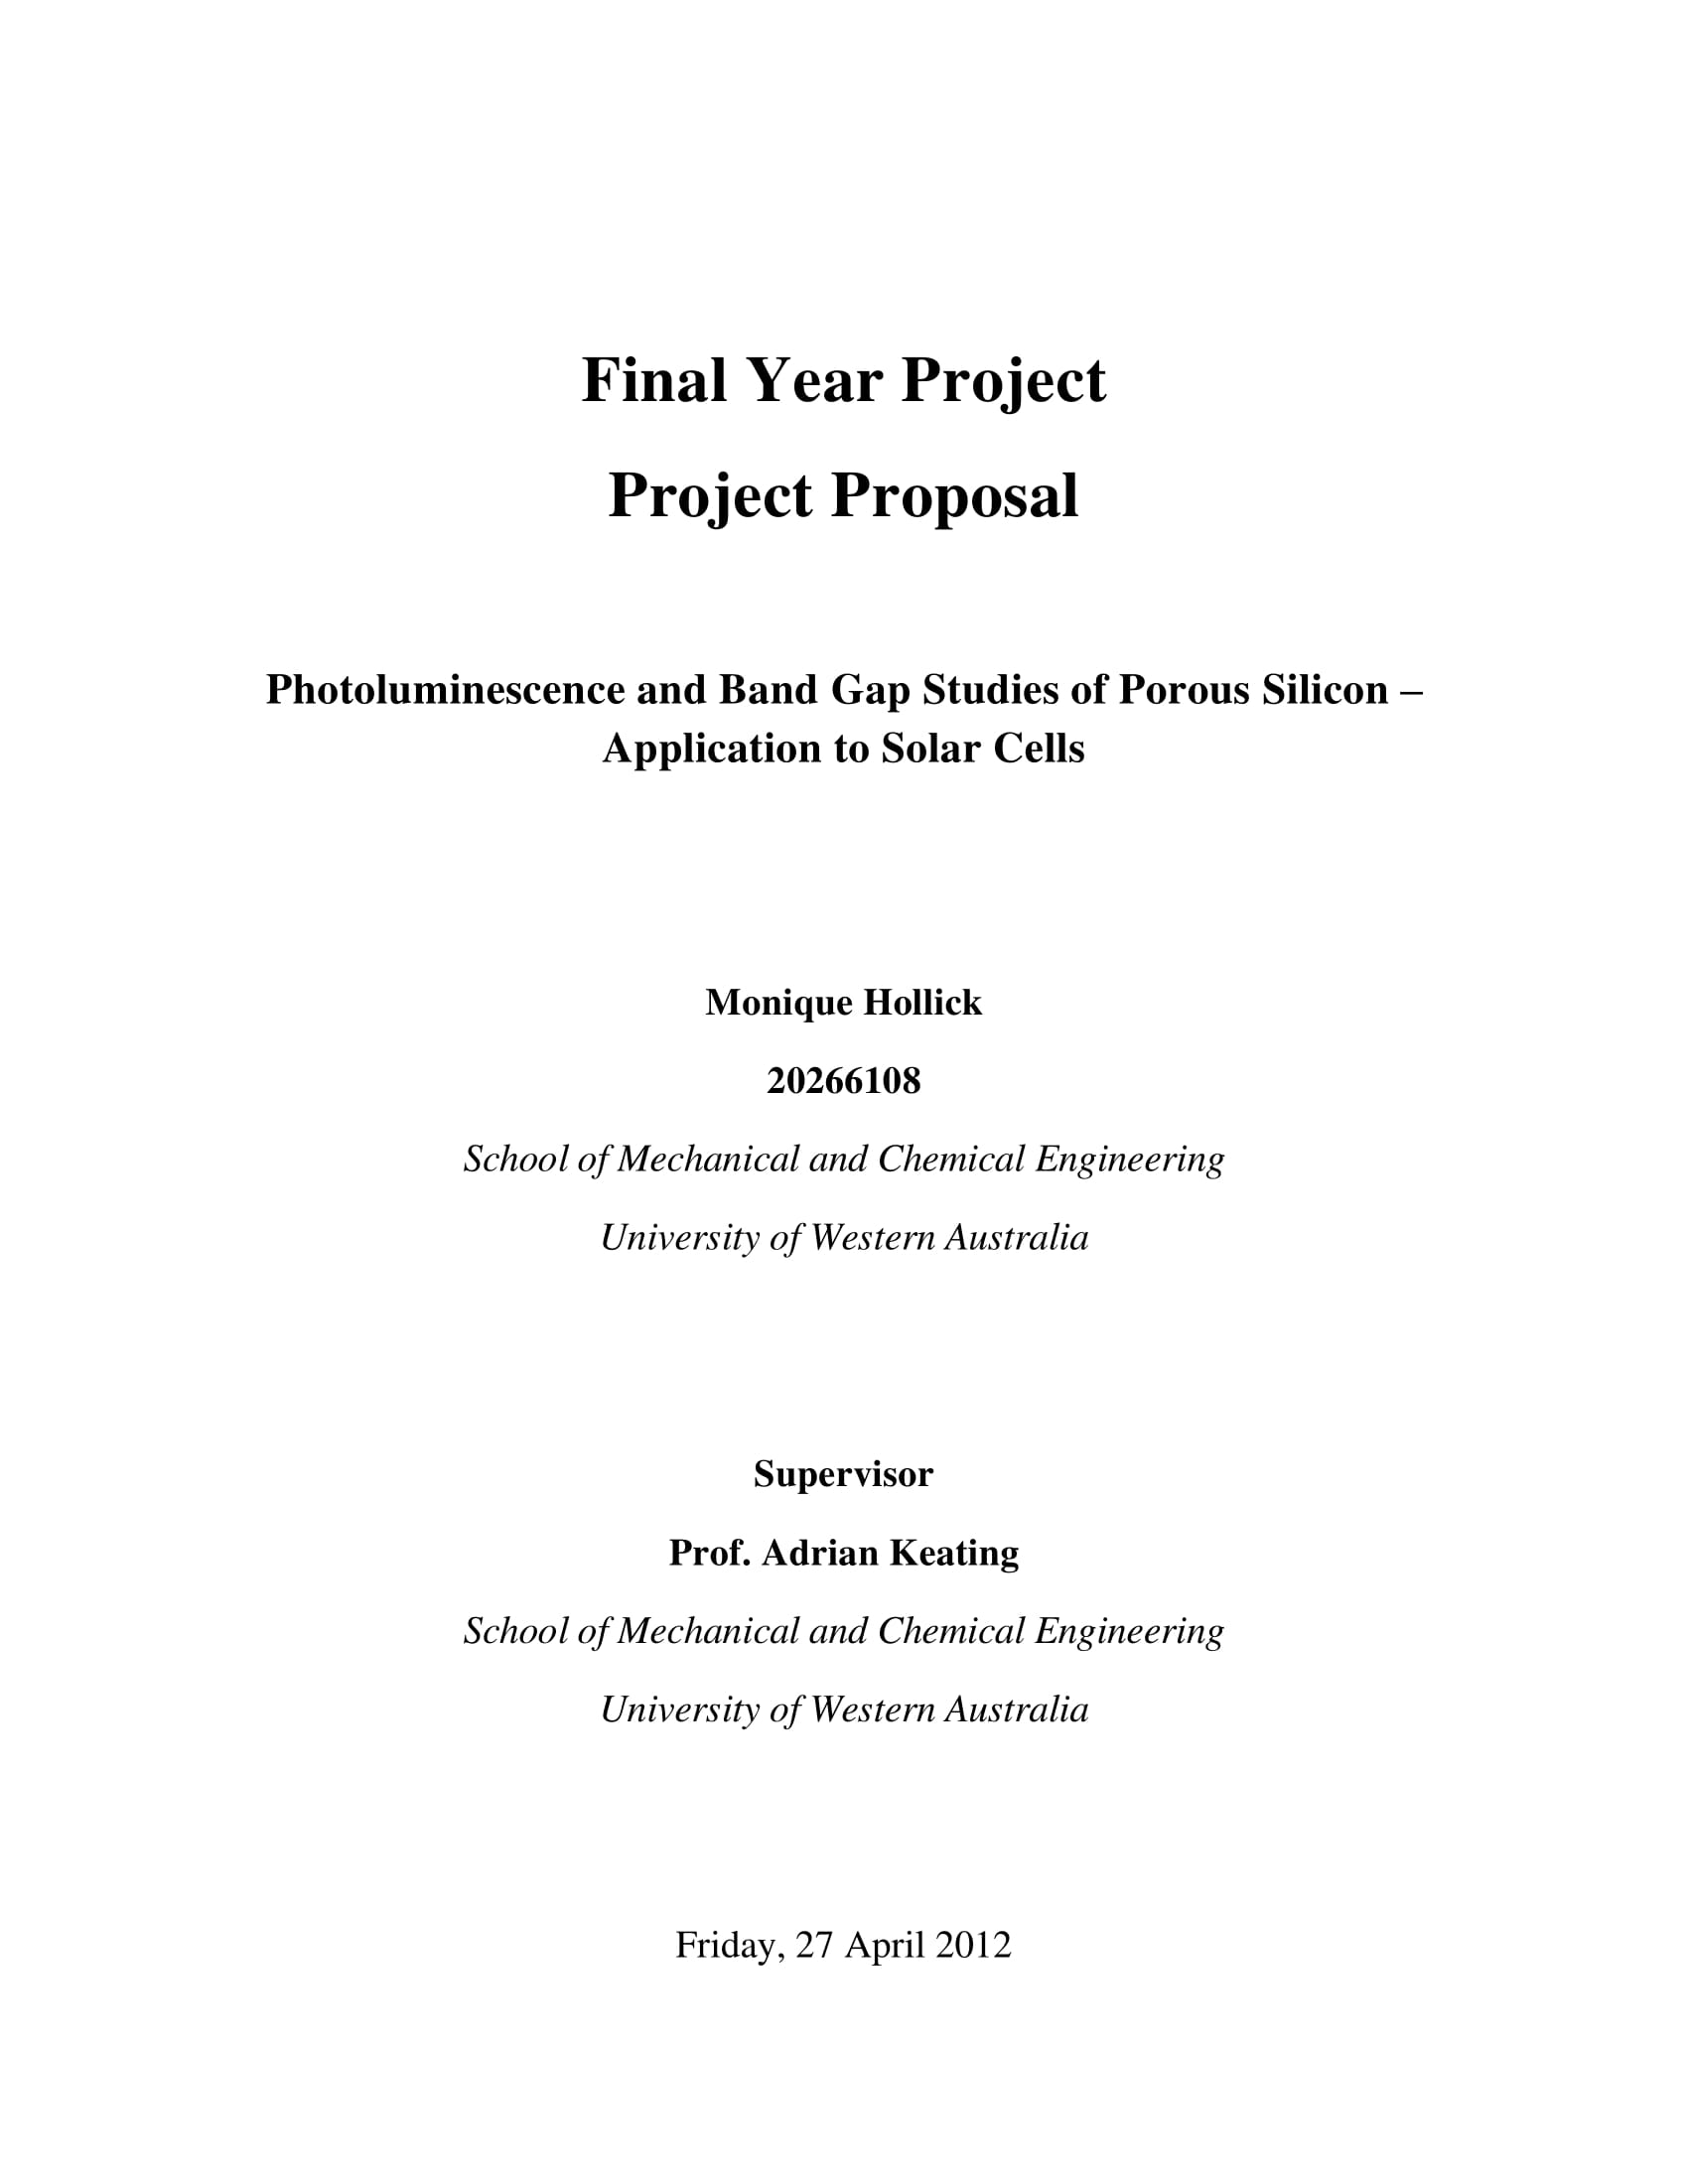 simple final year project proposal example 01